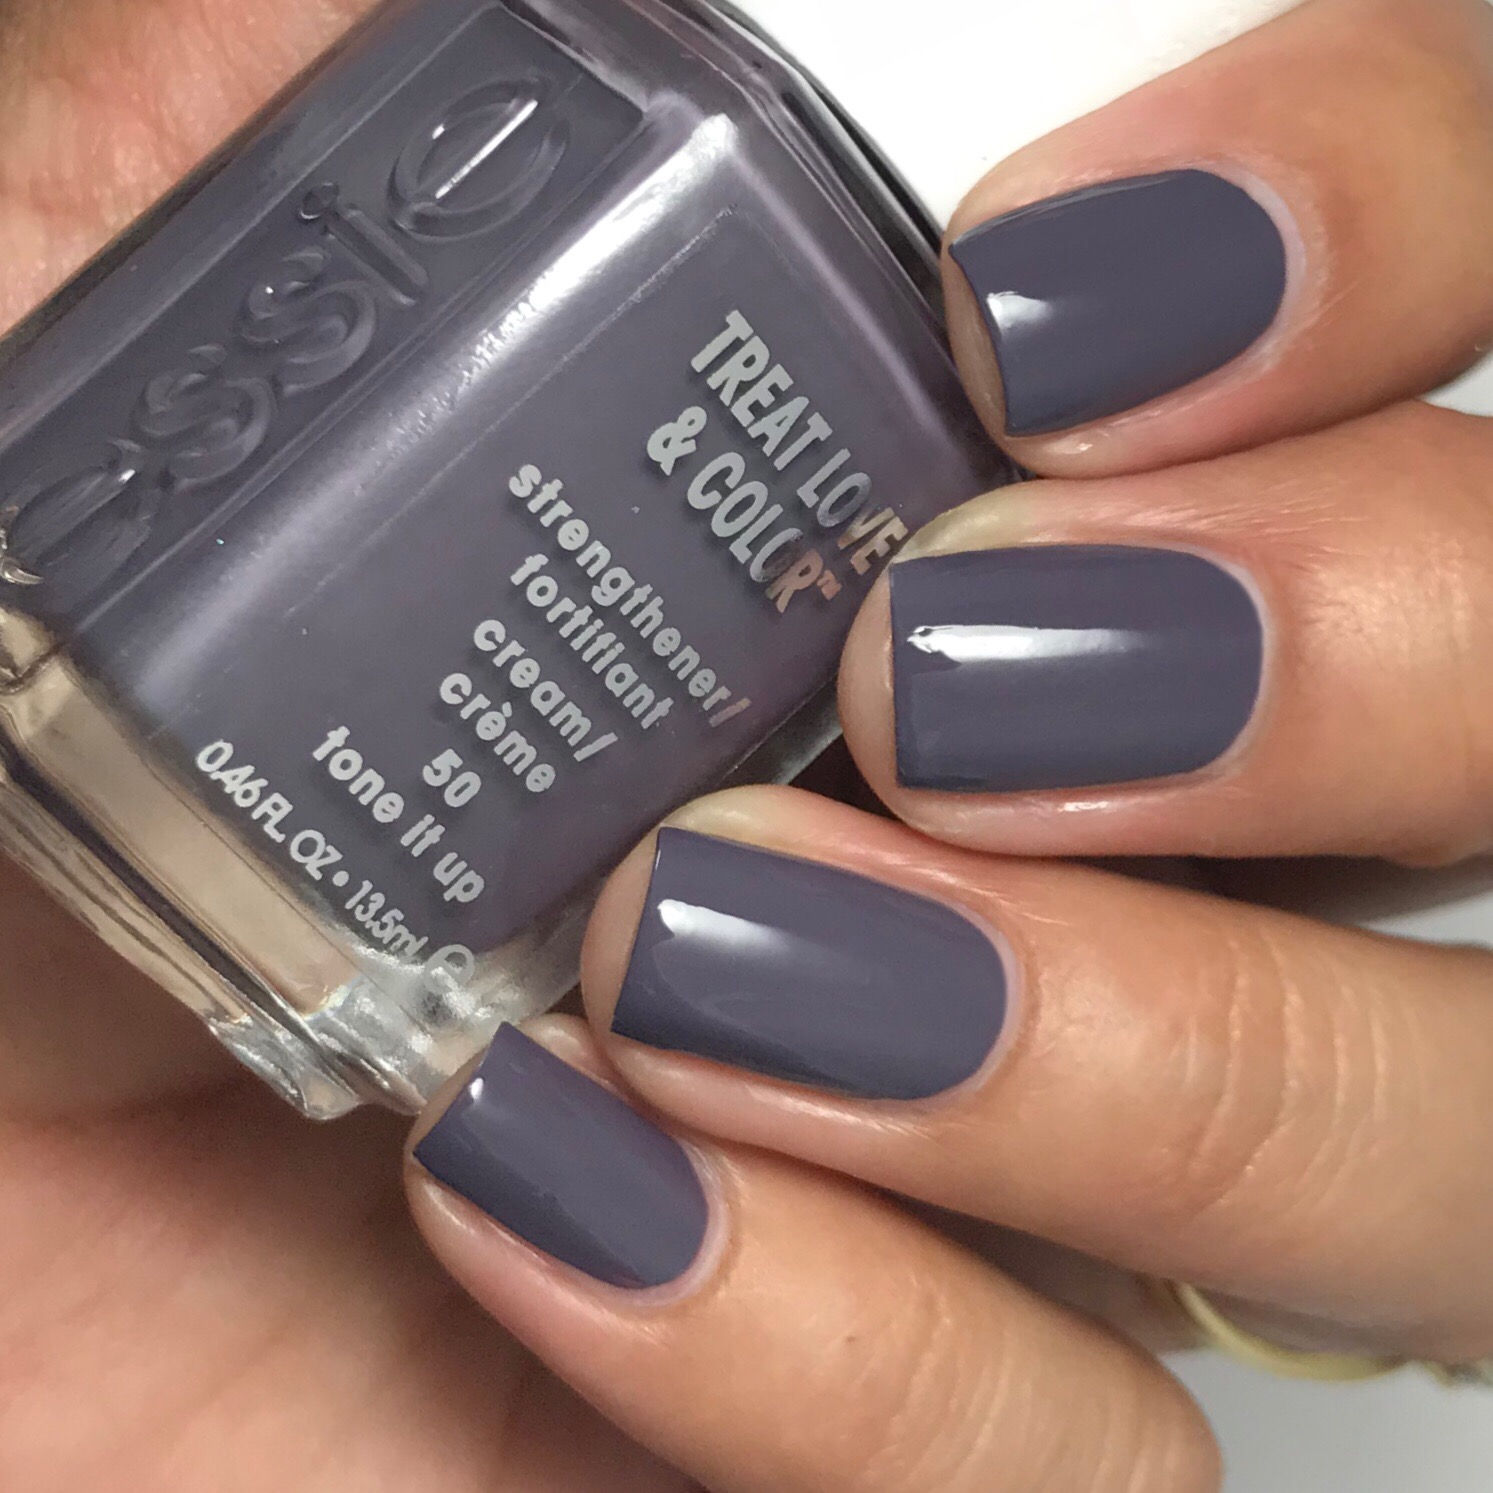 Ana\'s Manis: Essie Nail Polish: Treat Love & Color Part 1